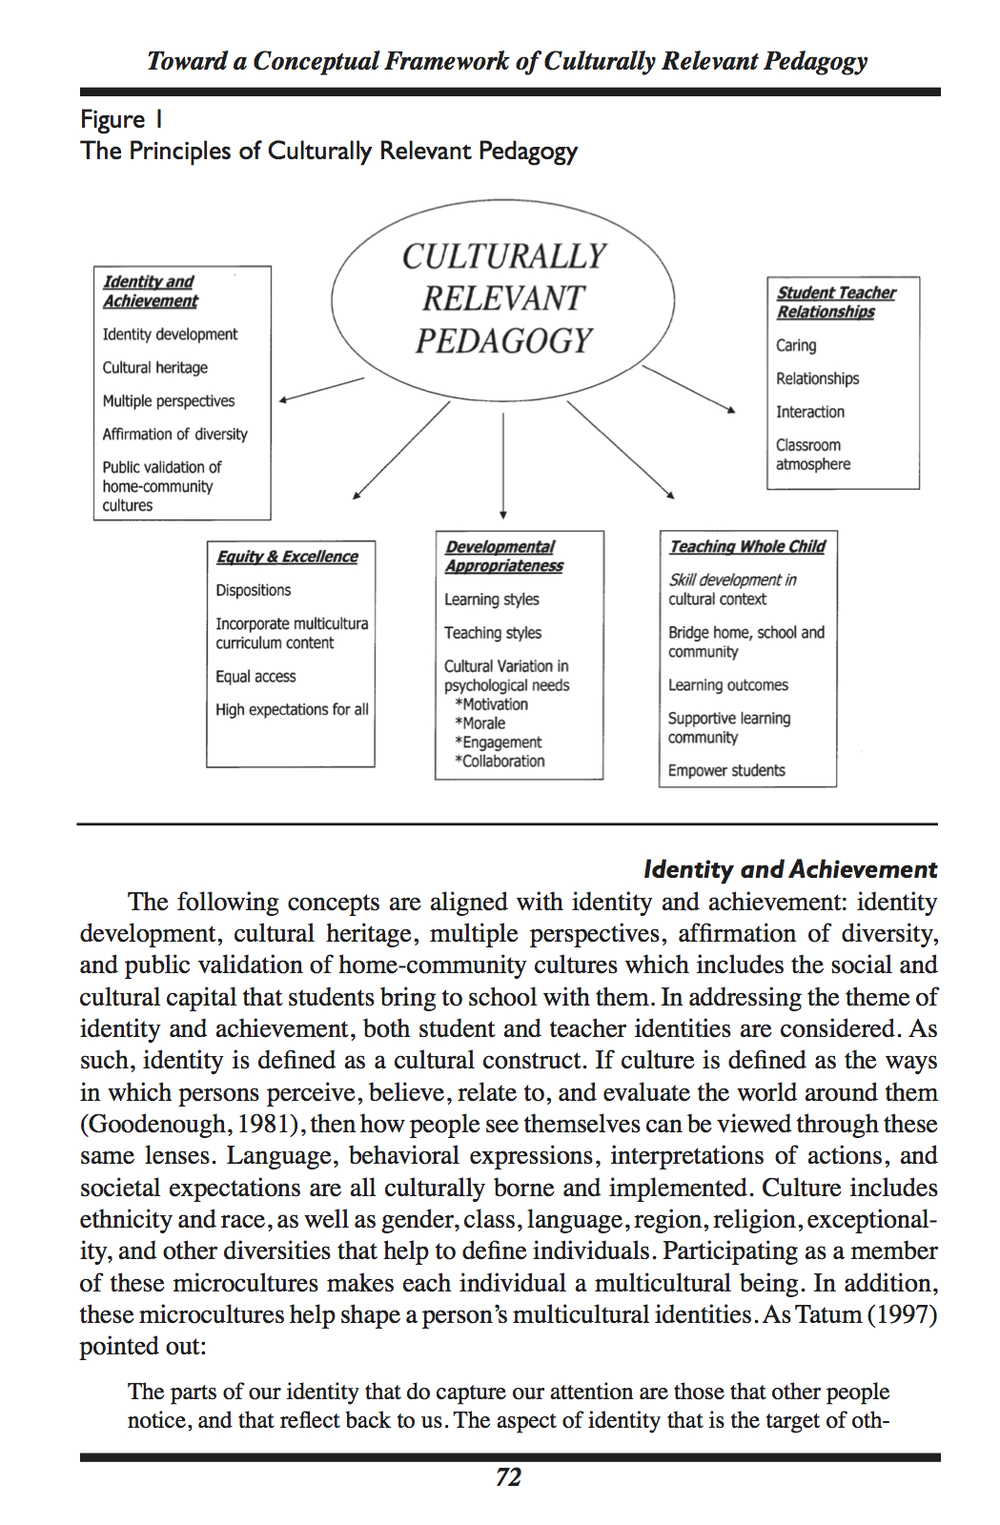 A Conceptual Framework for Culturally Relevant Pedagogy